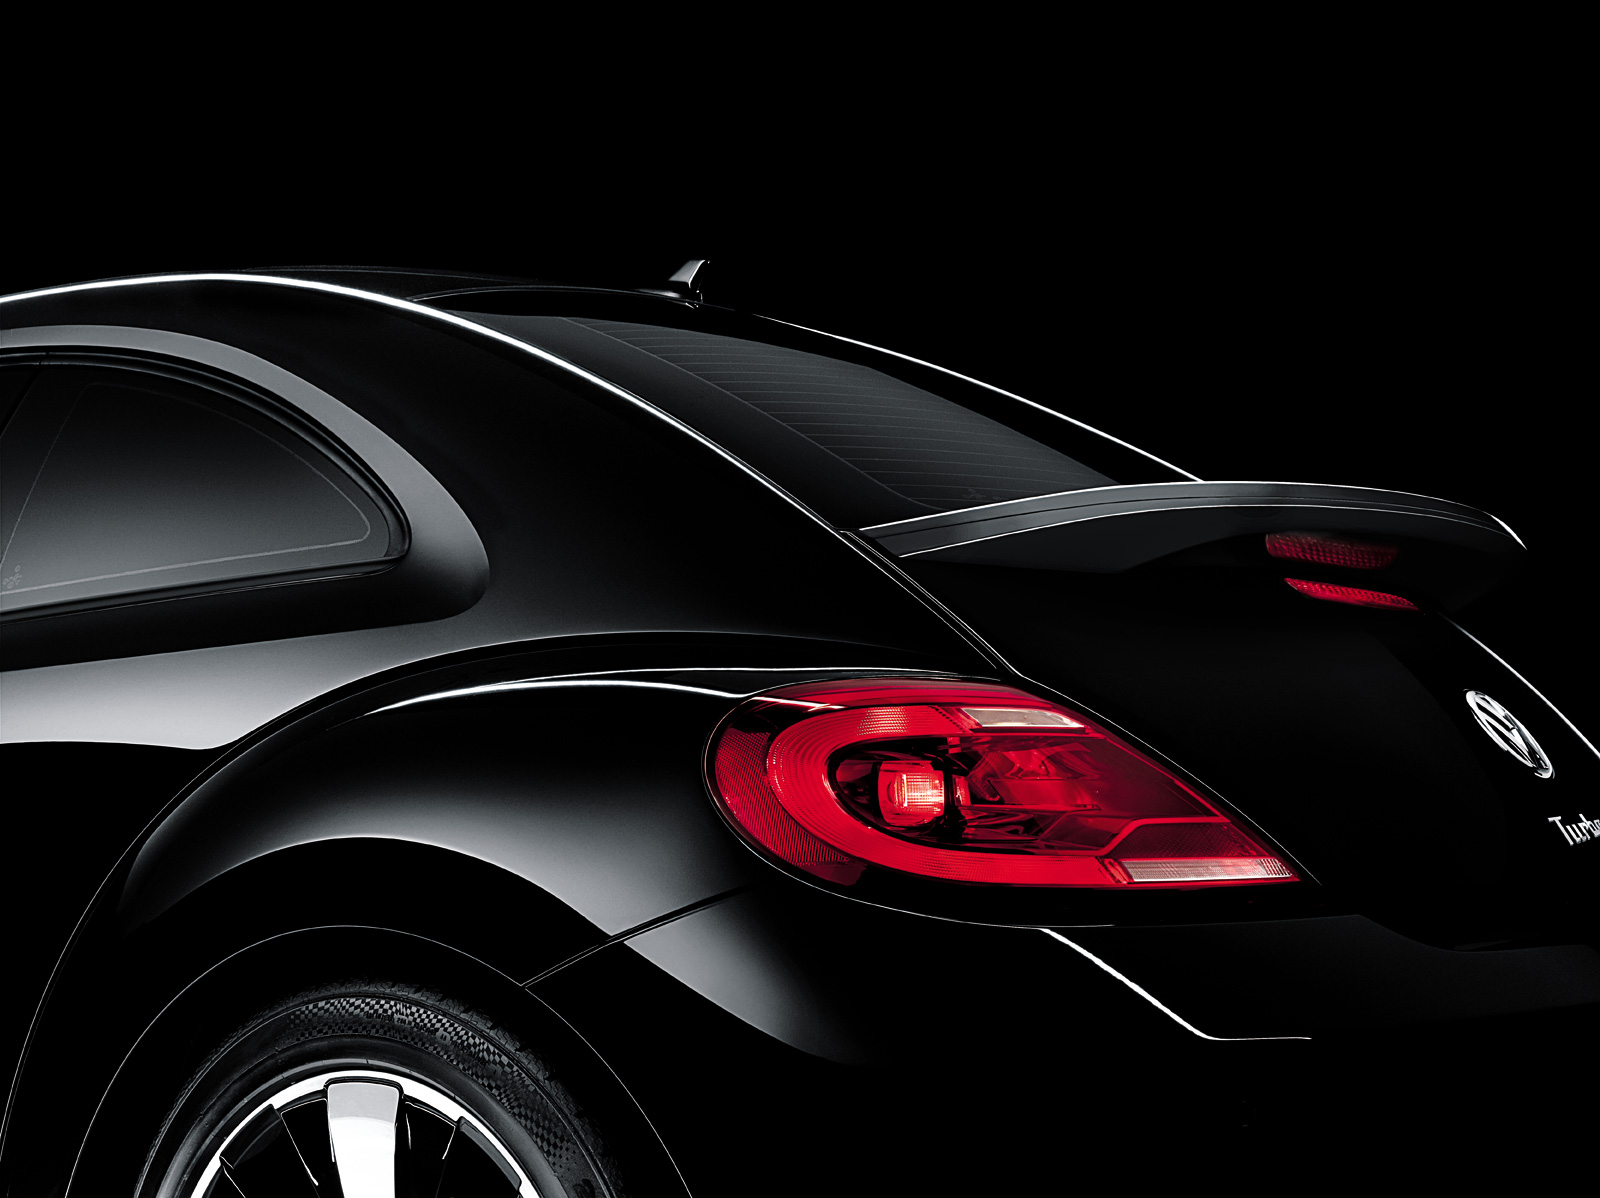 Volkswagen New Beetle black #2